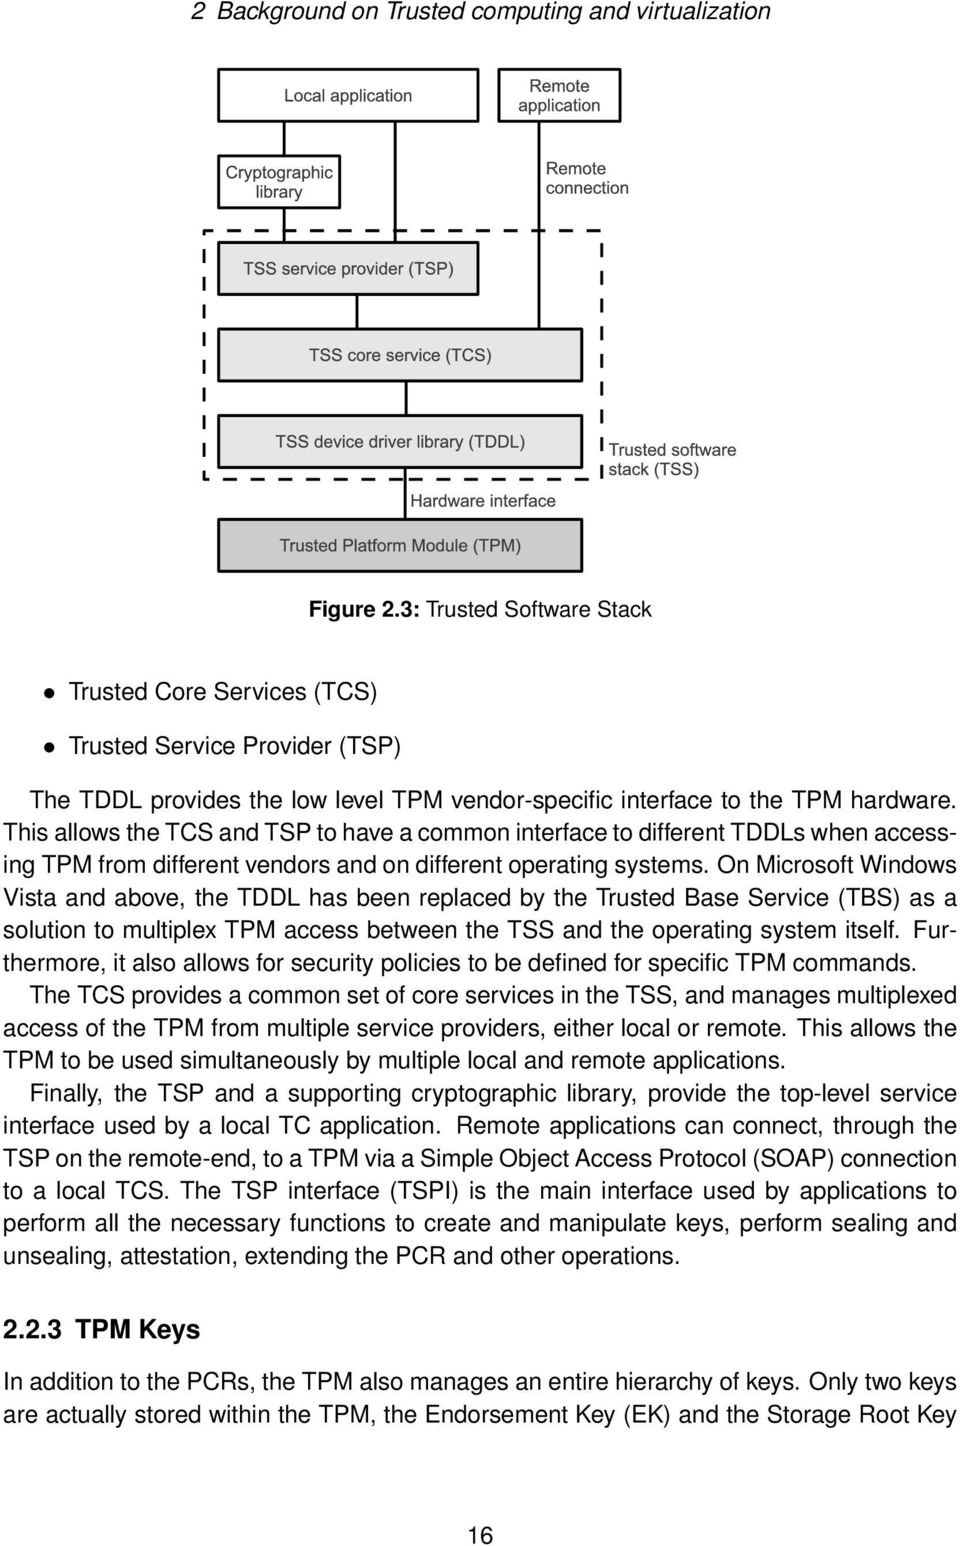 This allows the TCS and TSP to have a common interface to different TDDLs when accessing TPM from different vendors and on different operating systems.